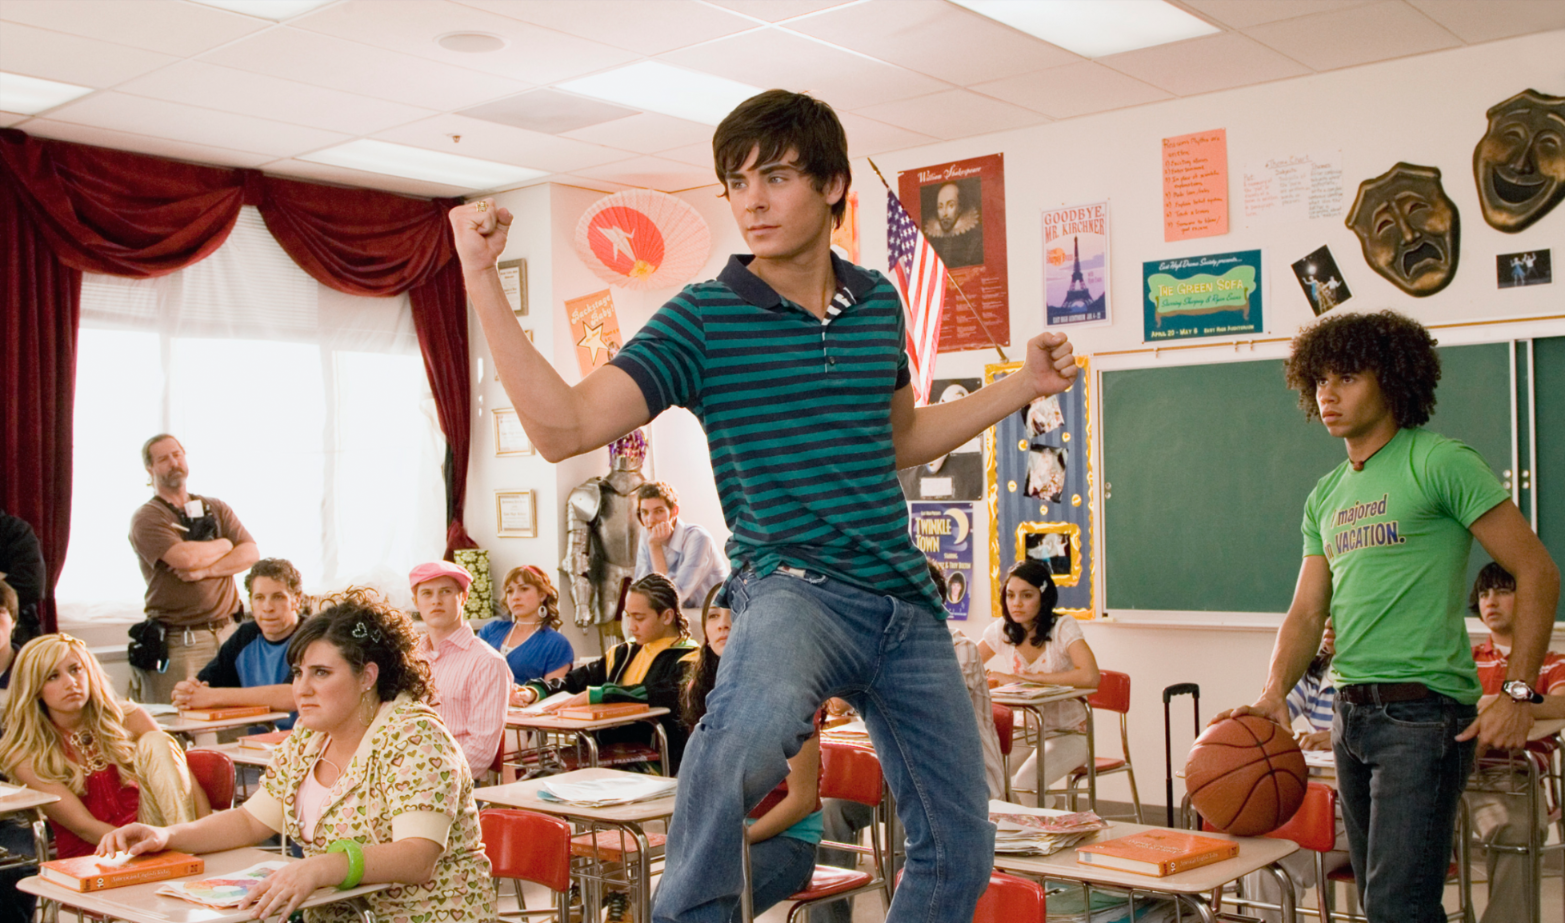 Quiz: Only a True High School Musical Superfan Can Score 100 on This Quiz